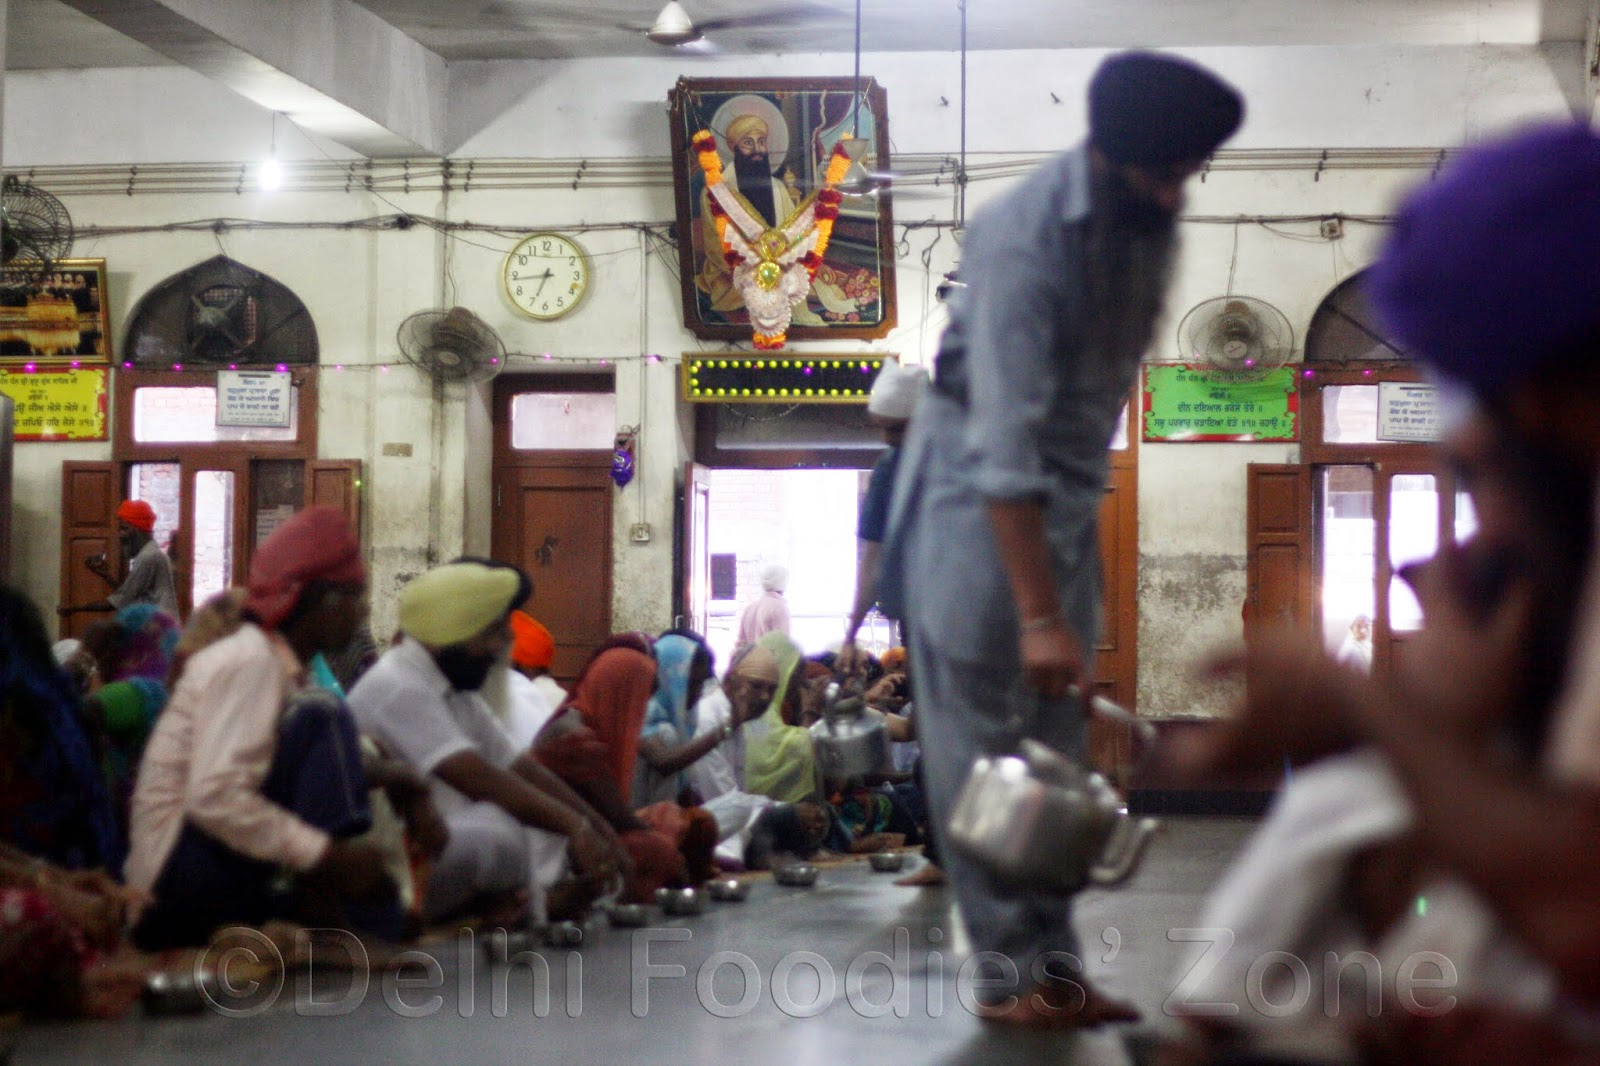 Langar hall of Golden Temple, Amritsar